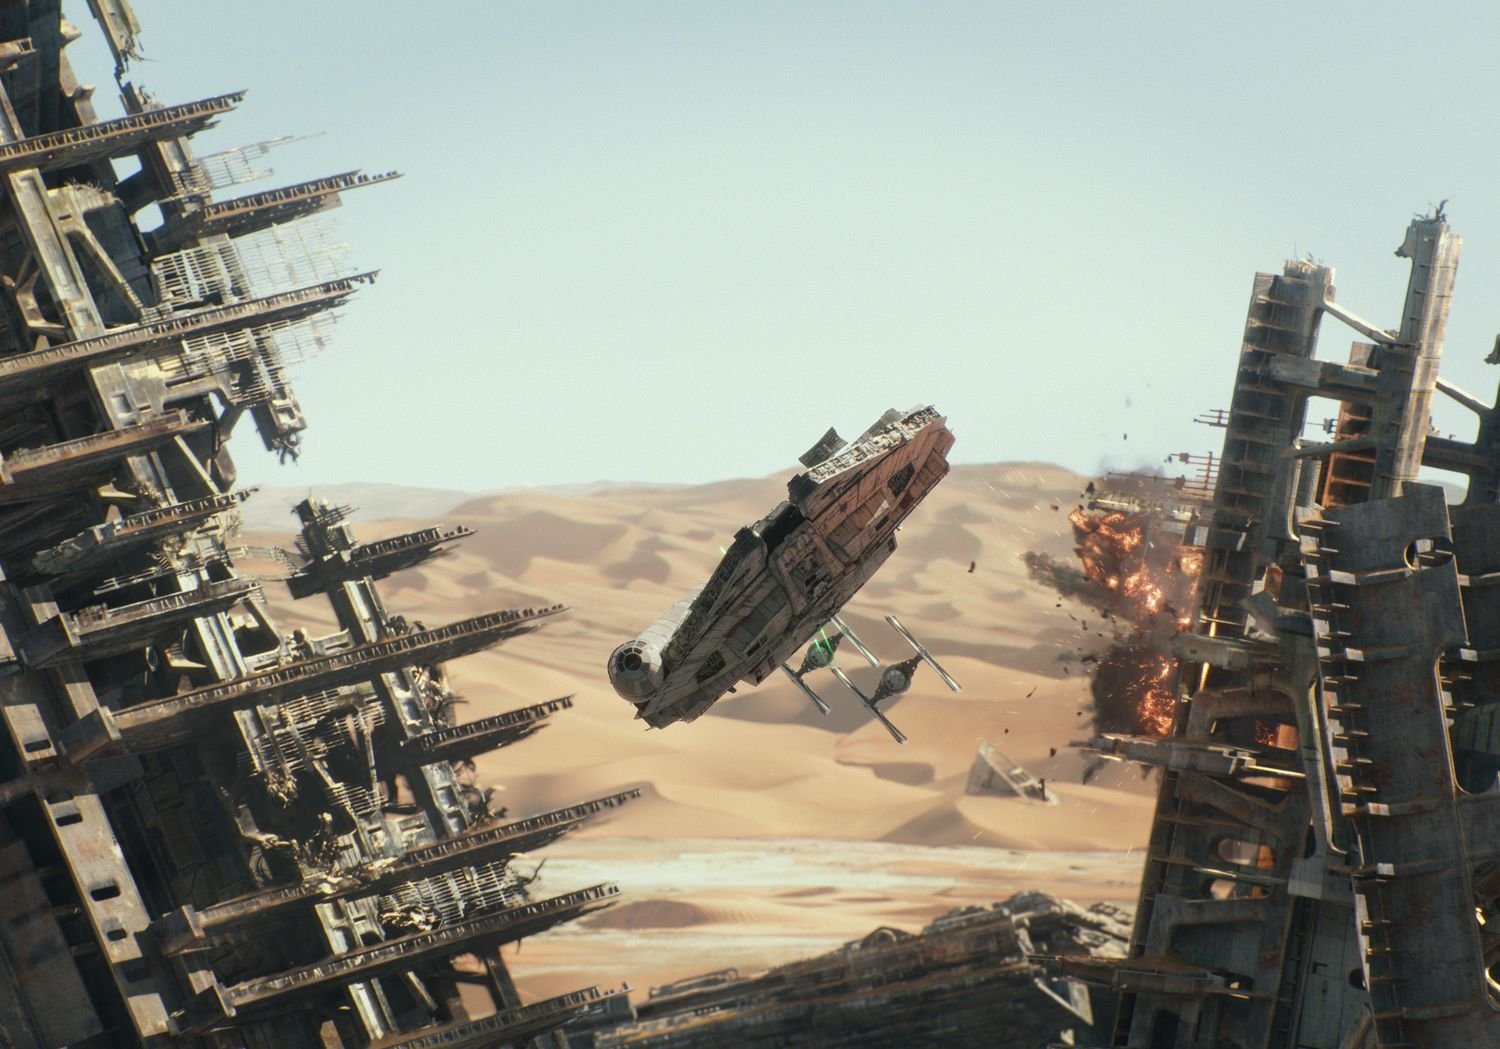 Star Wars Force Awakens VFX Video